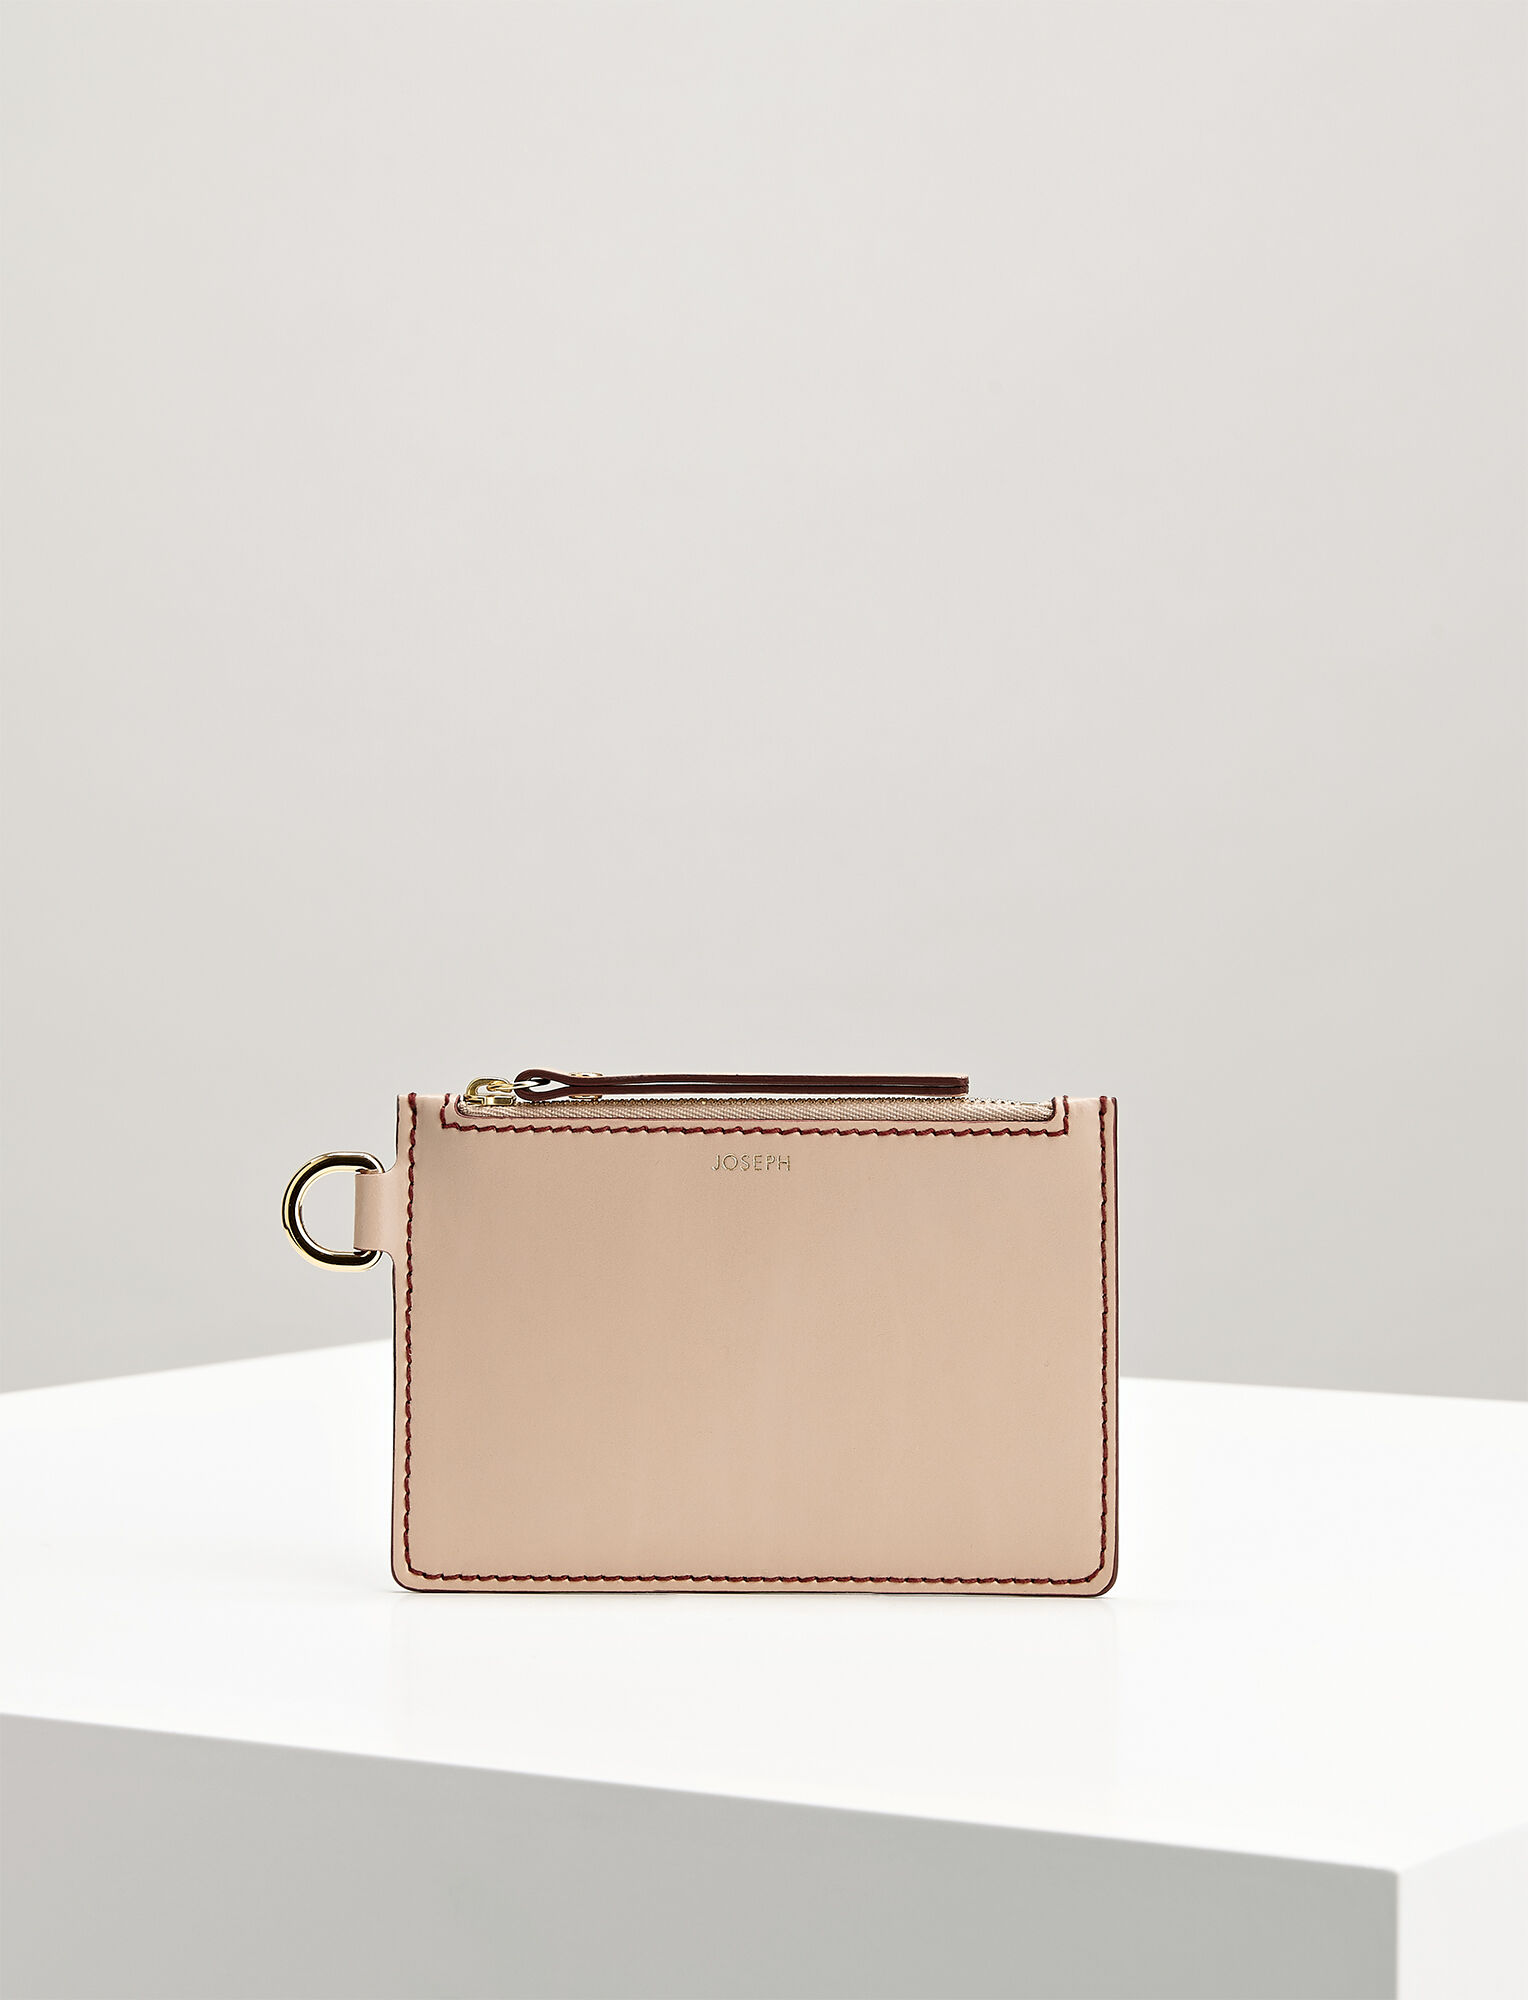 Joseph, Calf Leather Coin Purse, in PALE PINK